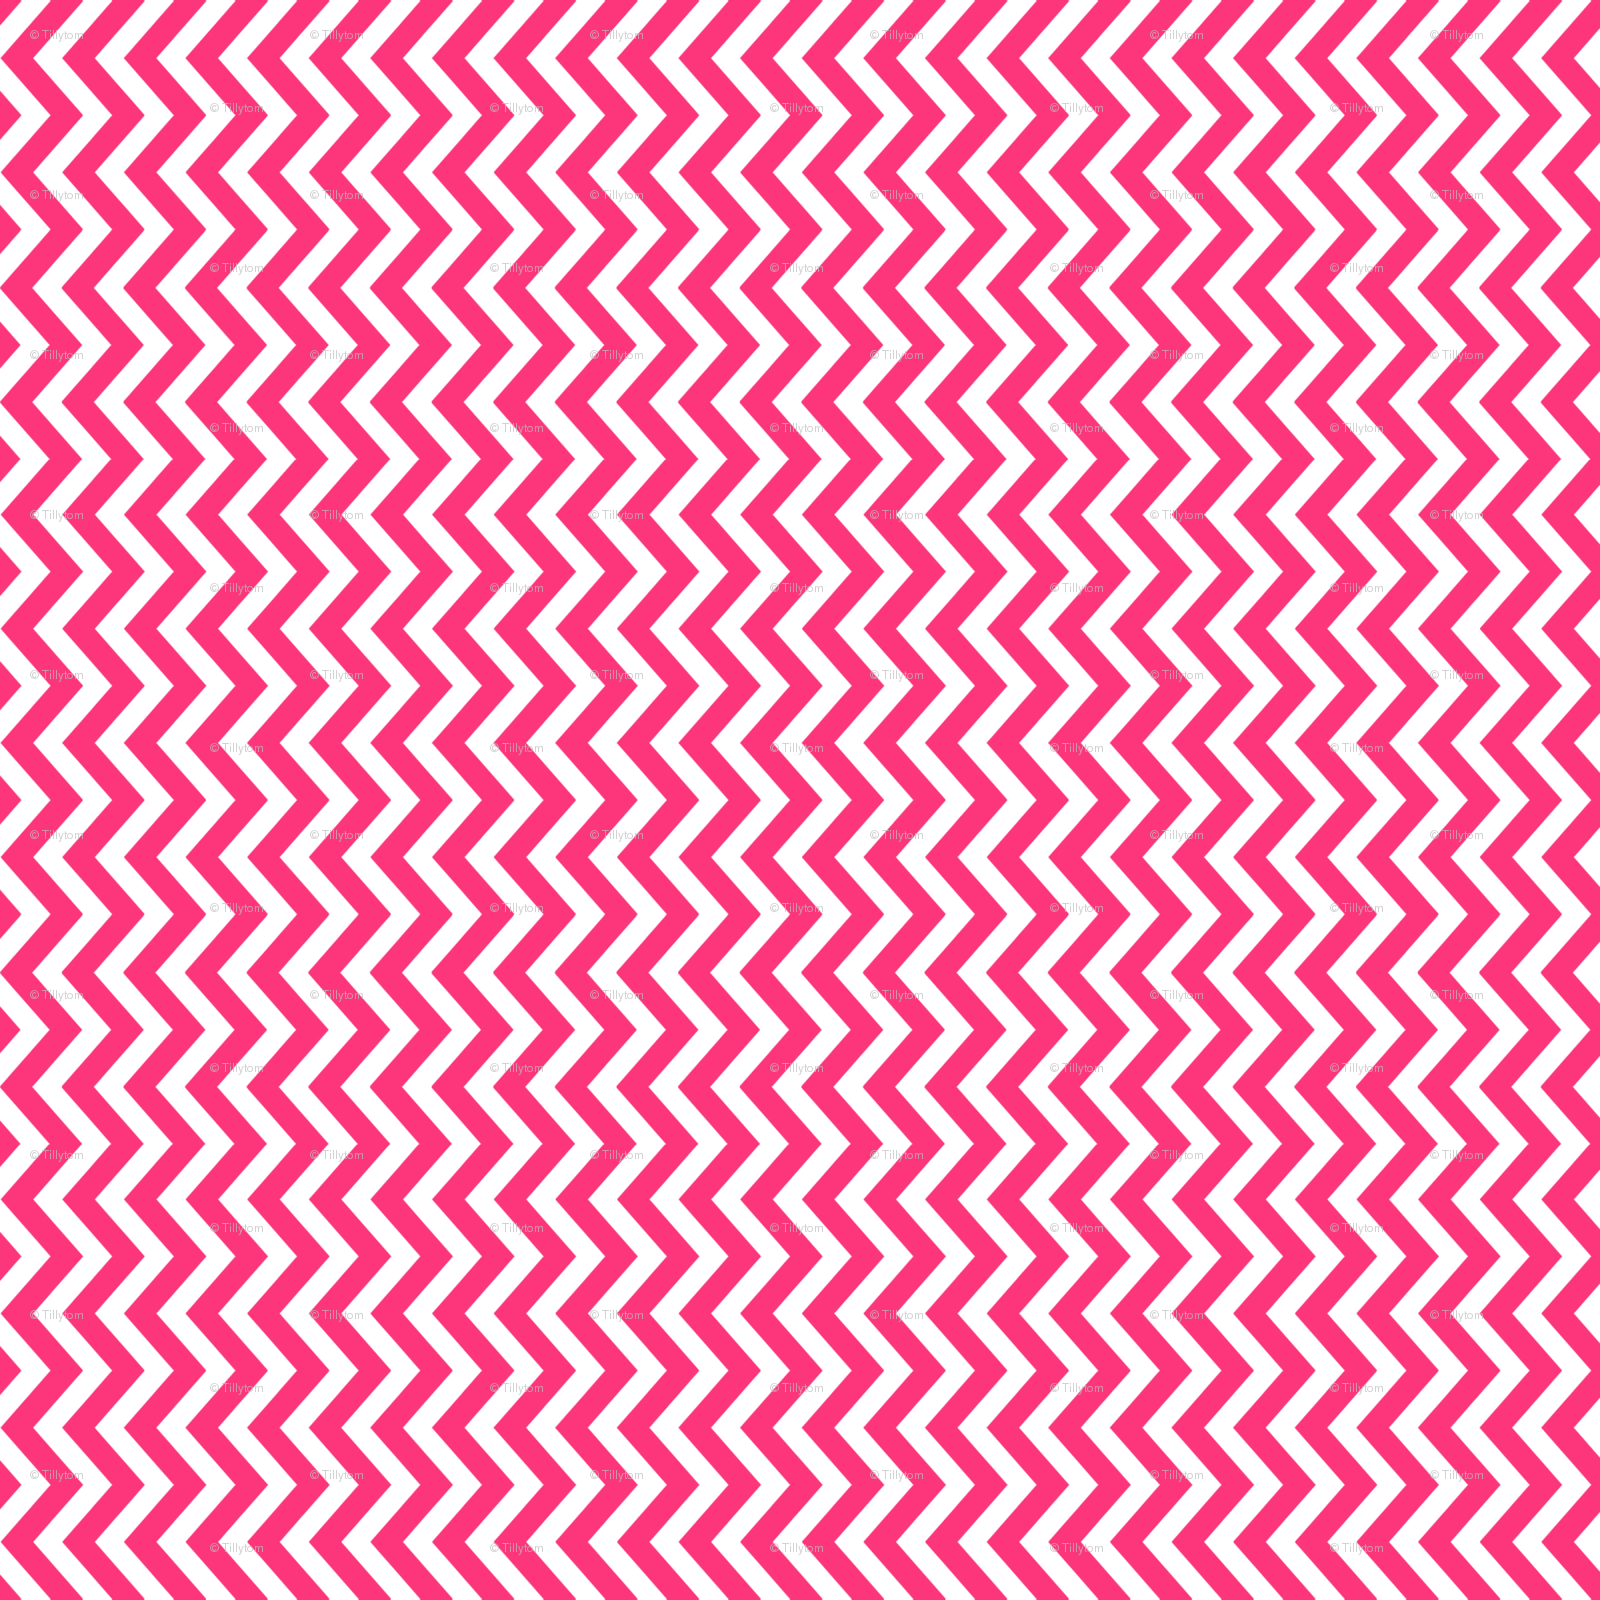 pink and black chevron wallpaper